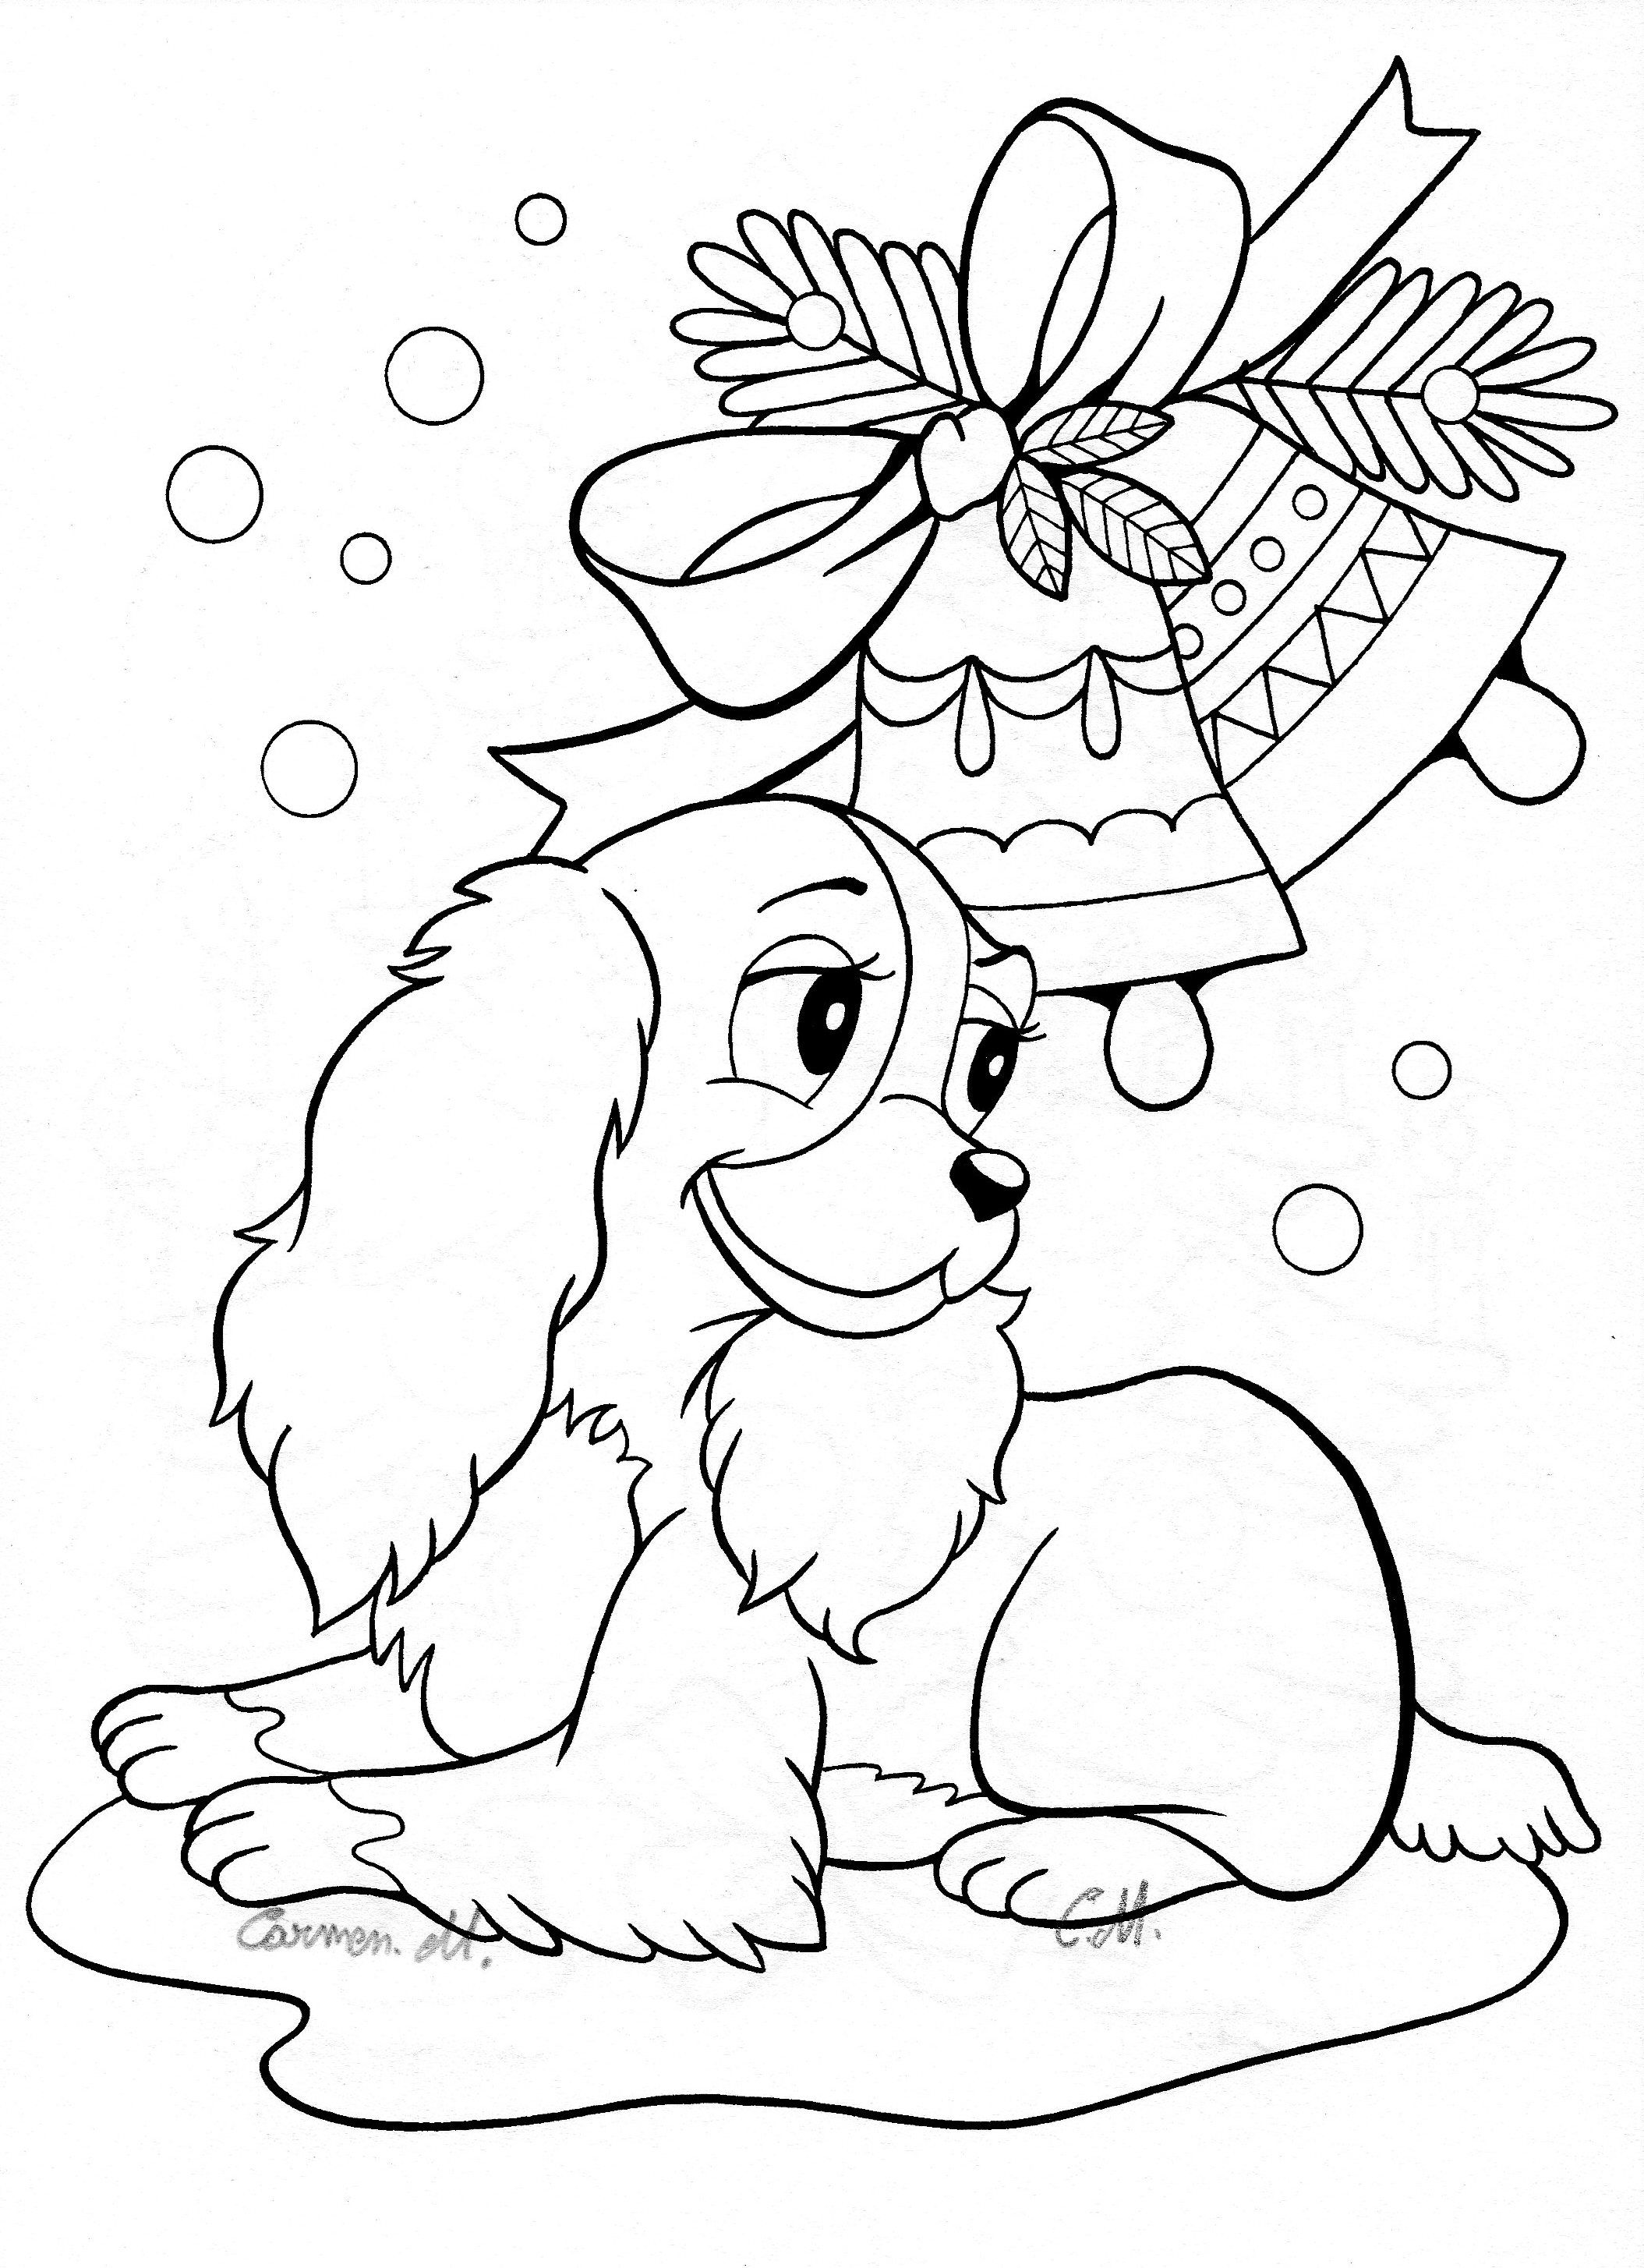 Kids Crafts: Cute Coloring Pages! : )   Preschool Coloring